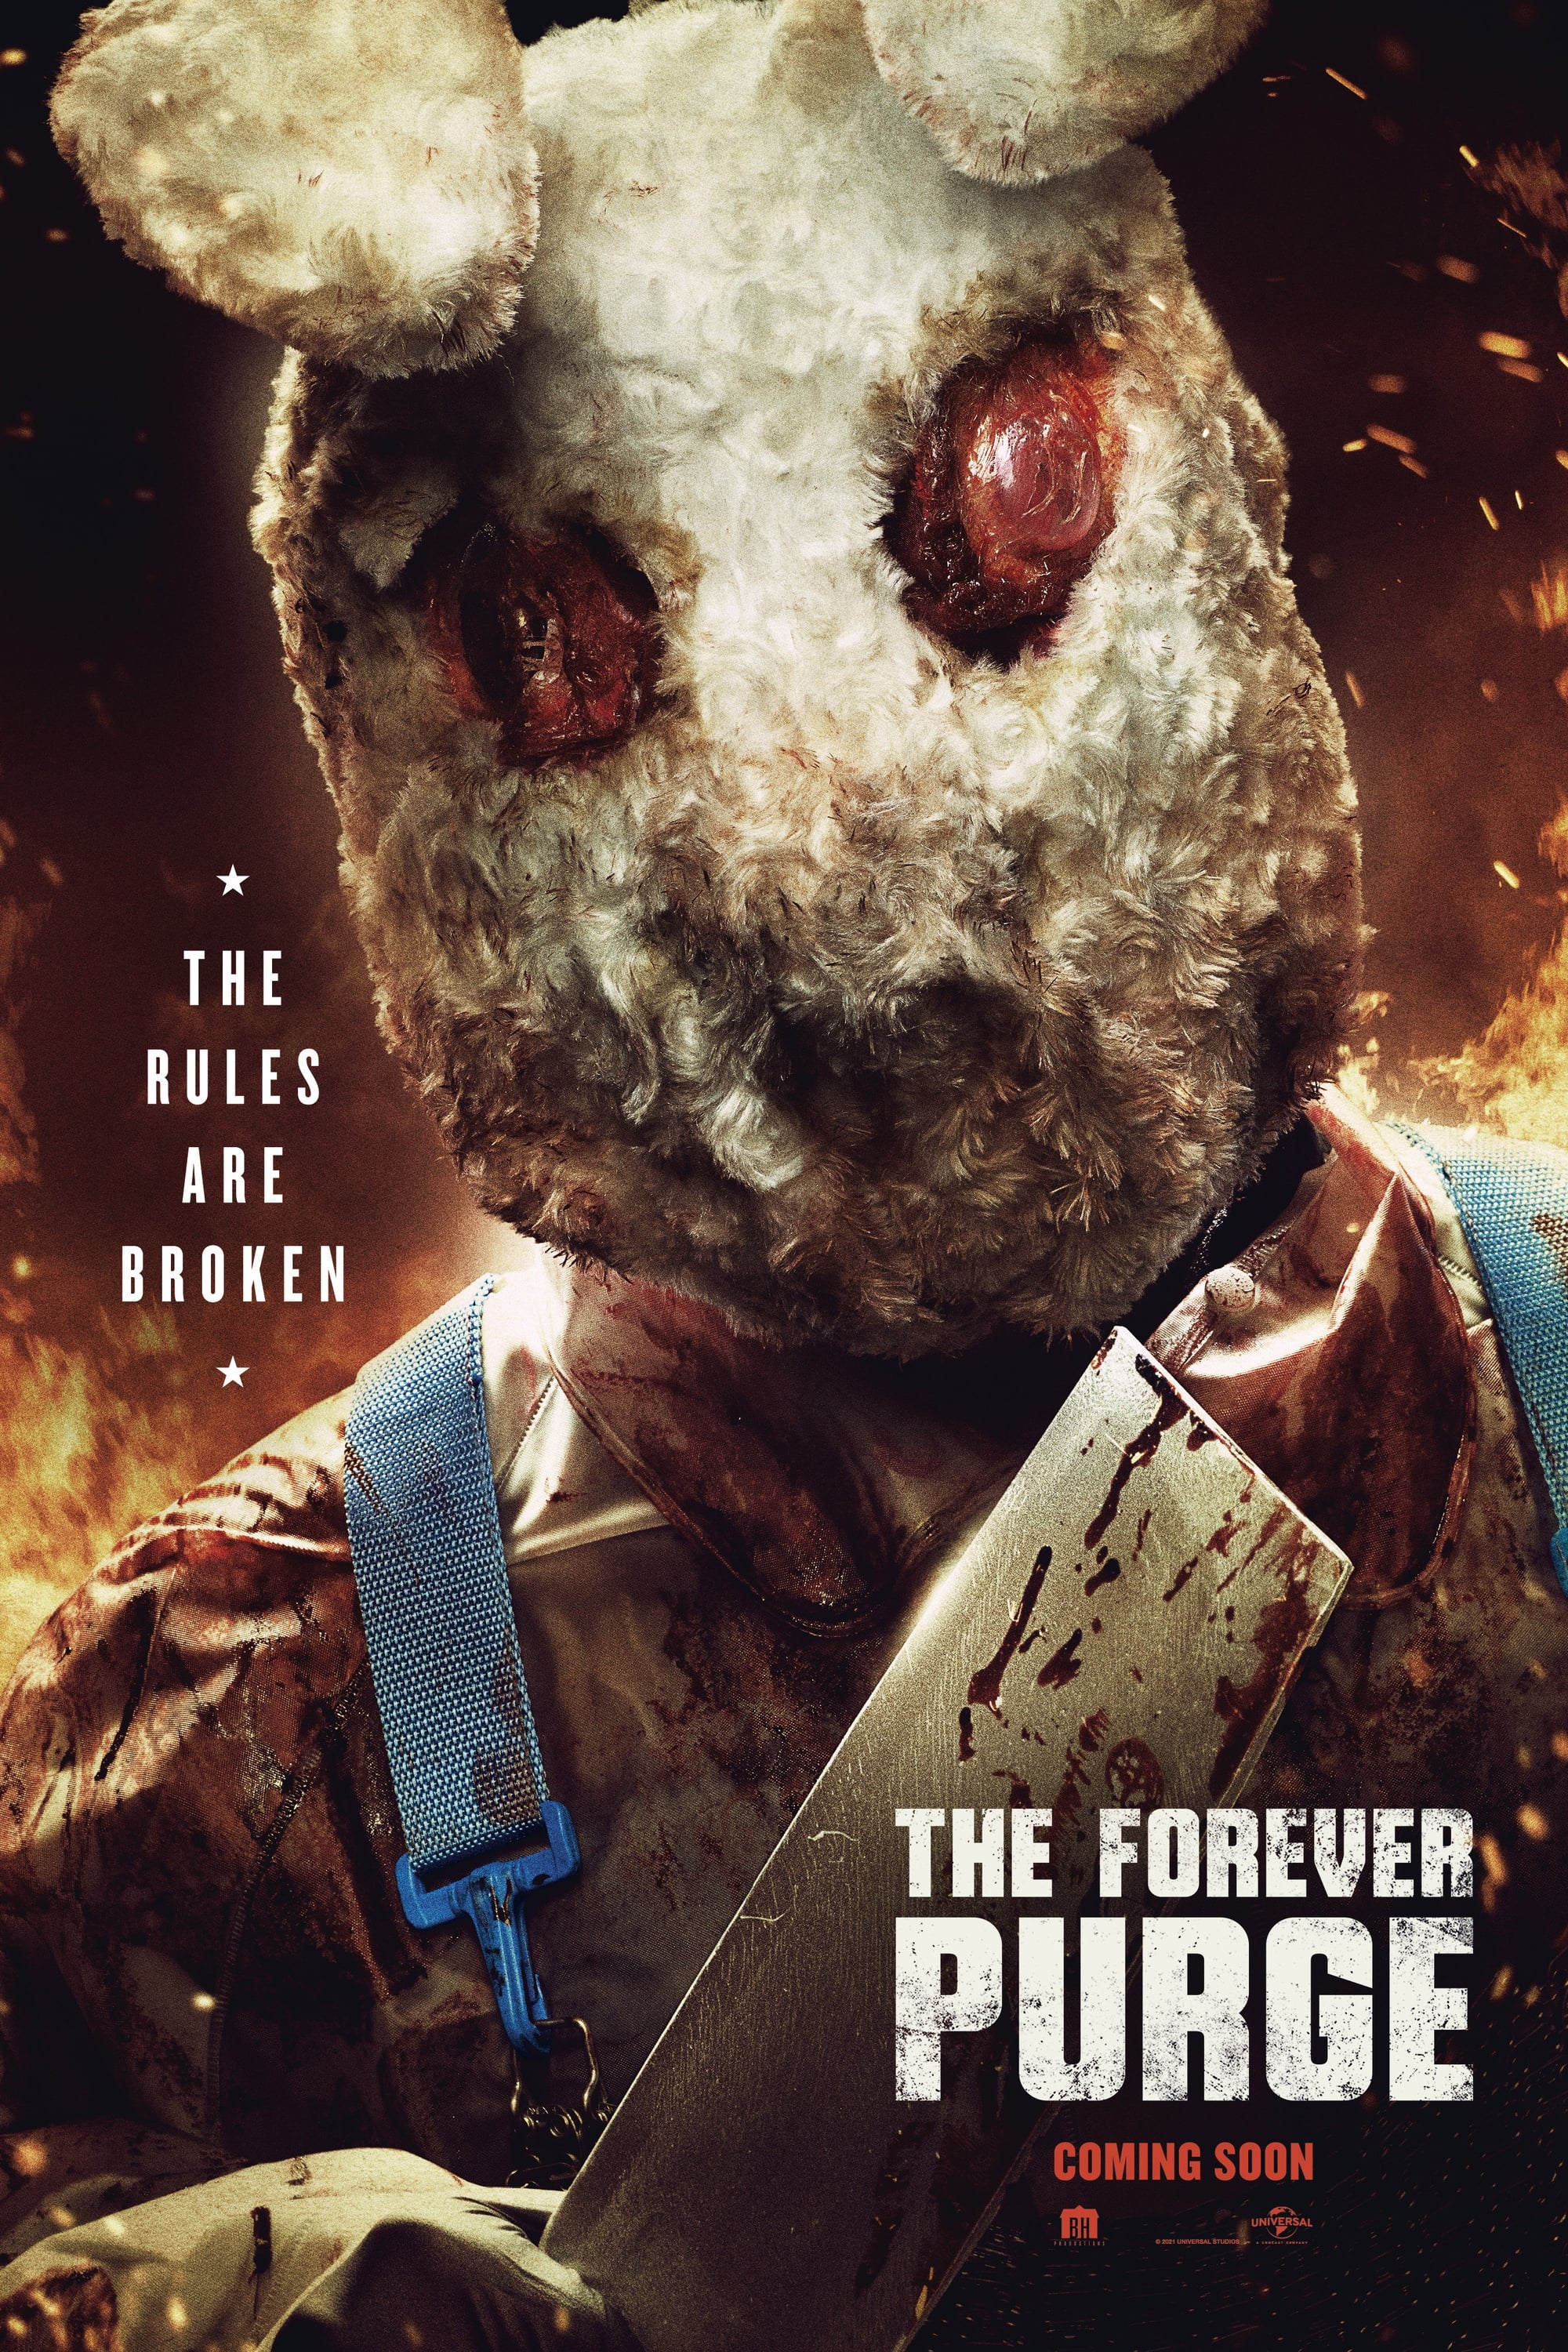 Poster and image movie The Forever Purge